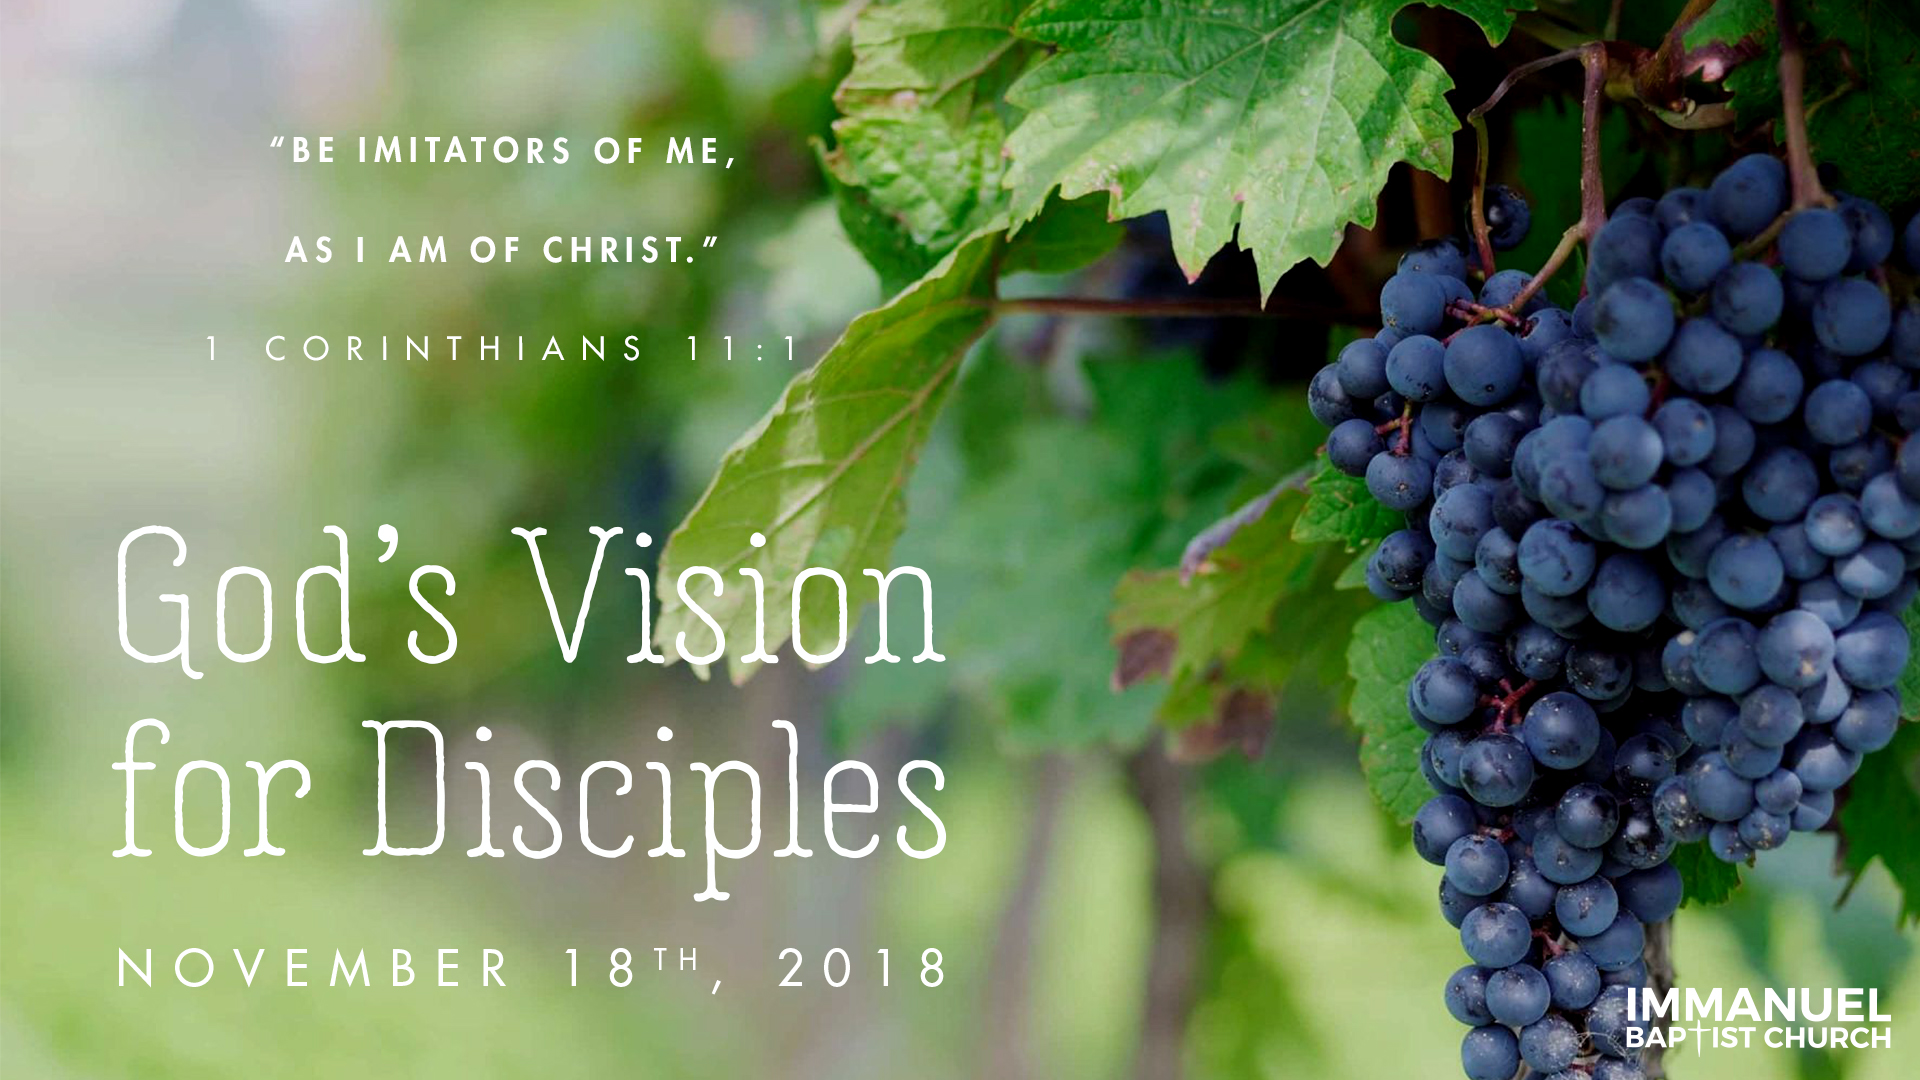 What Are Disciples? Image